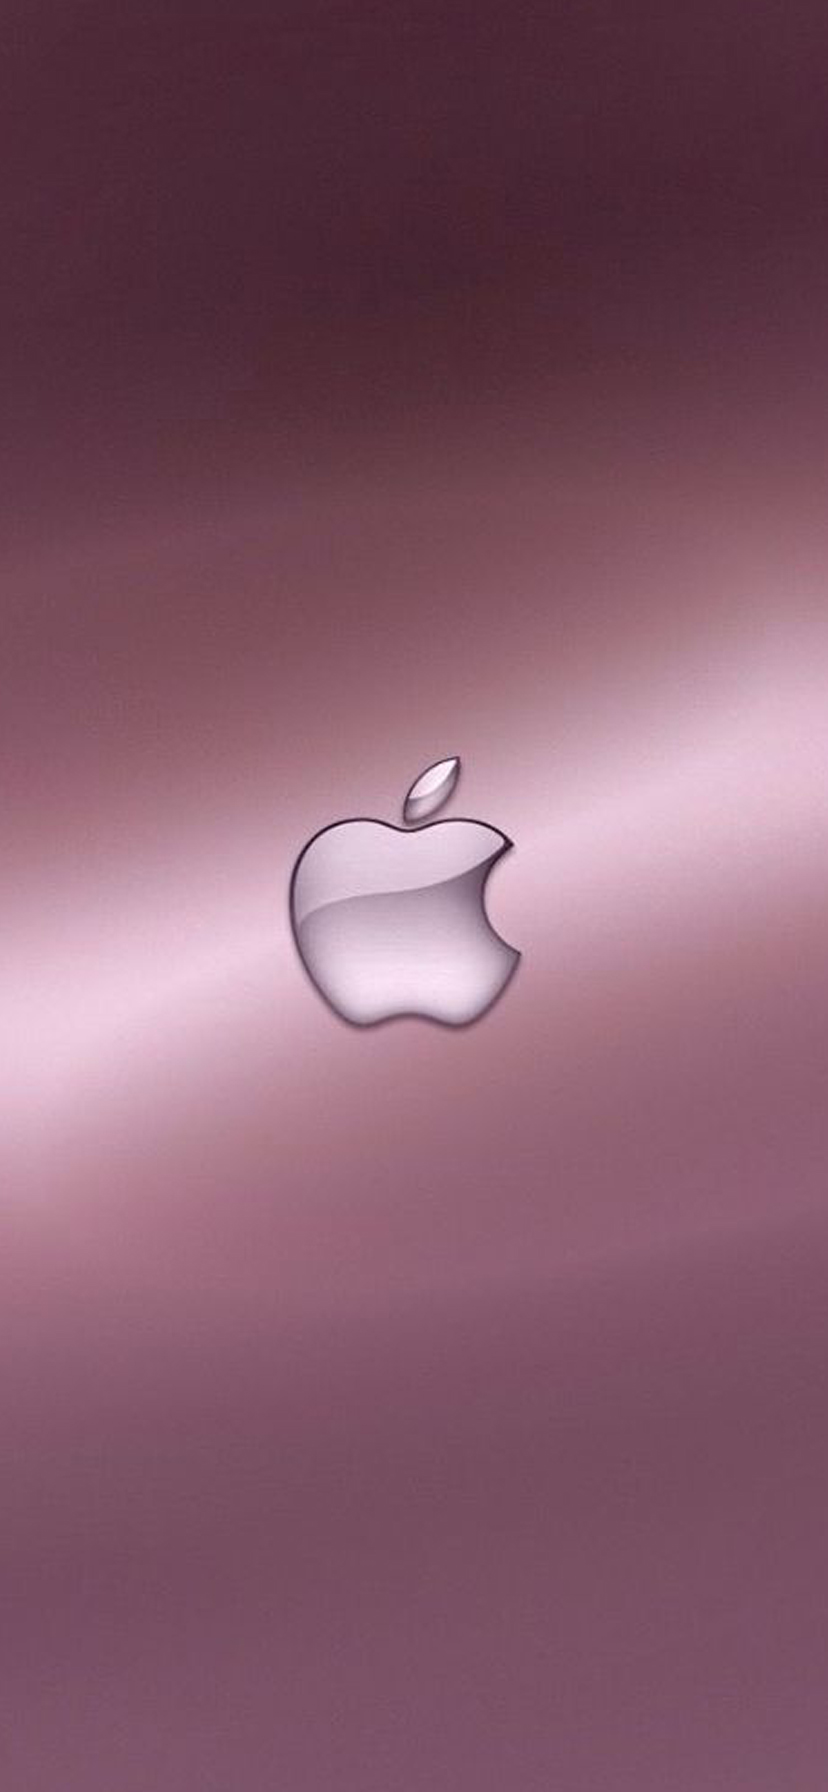 10 Alternative Wallpapers For Apple Iphone 11 07 Purple 3d Apple Logo Hd Wallpapers Wallpapers Download High Resolution Wallpapers